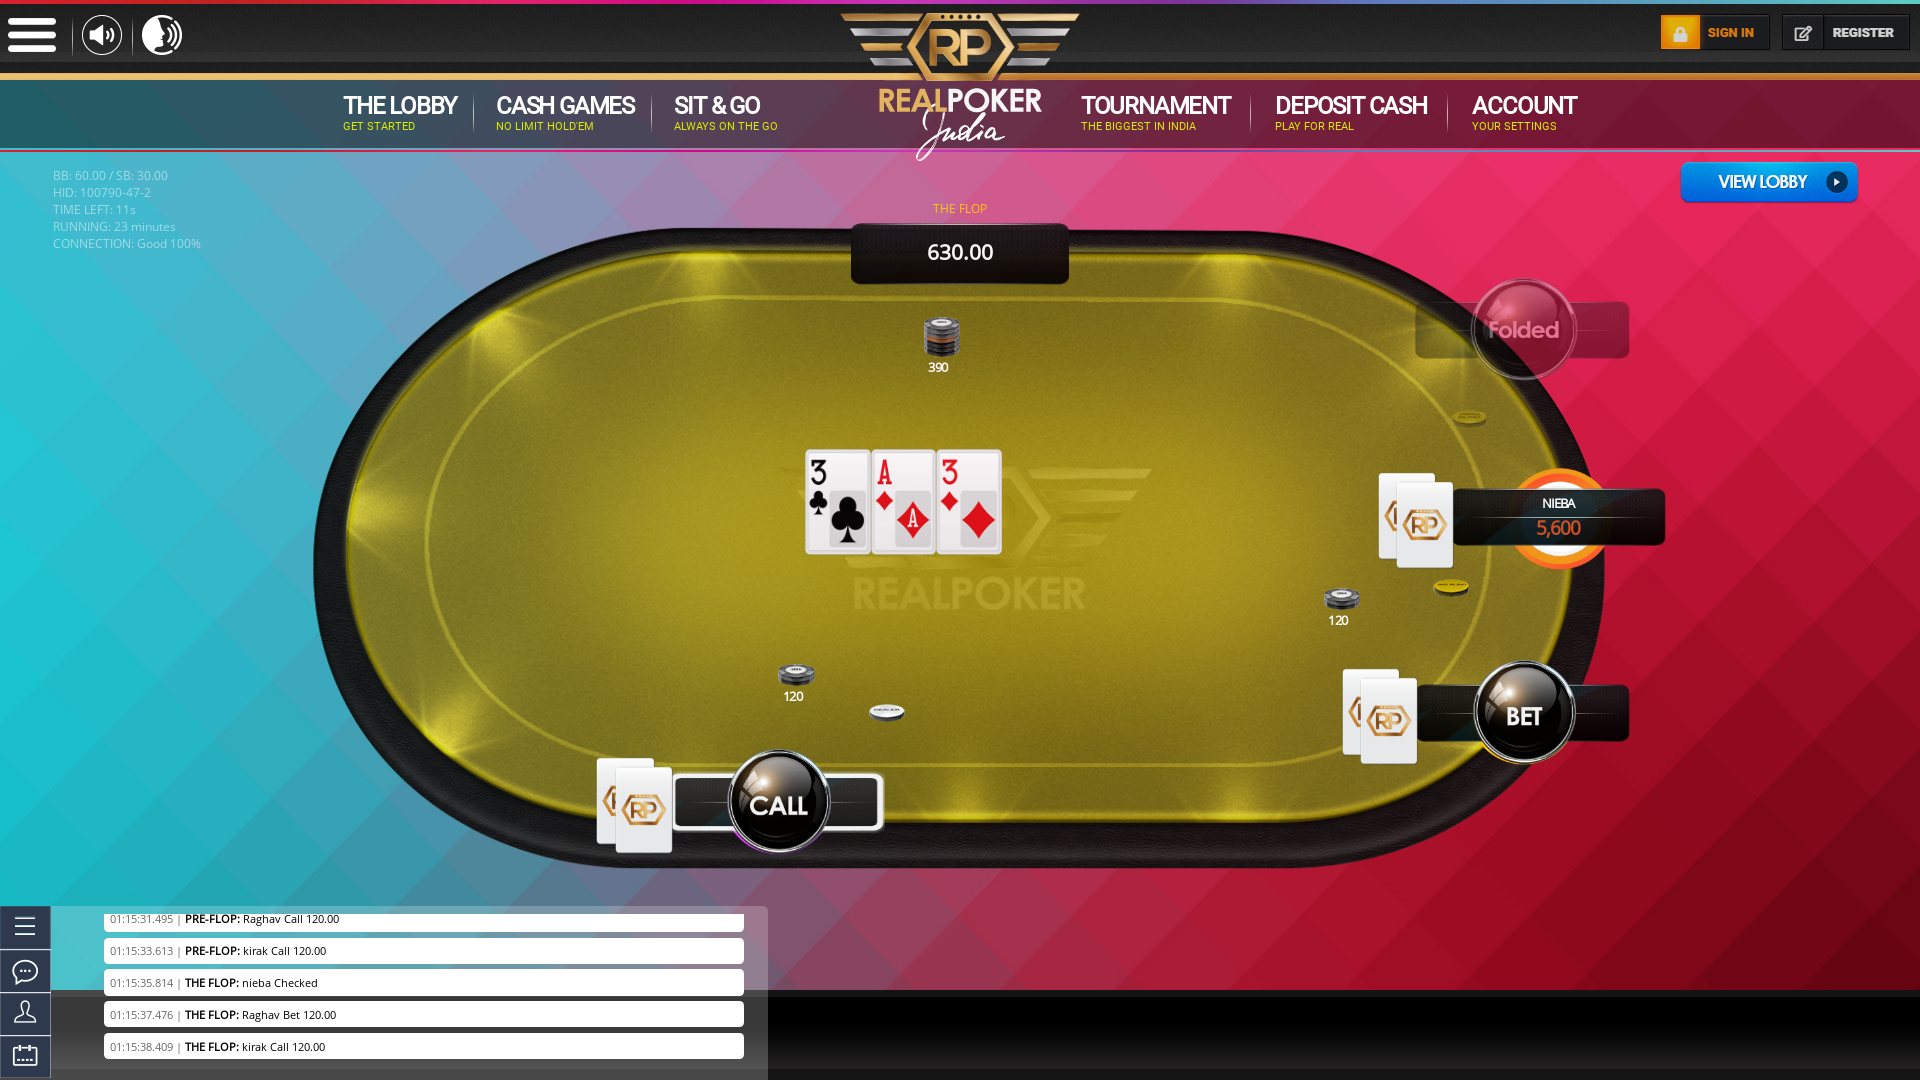 Online poker on a 10 player table in the 23rd minute match up